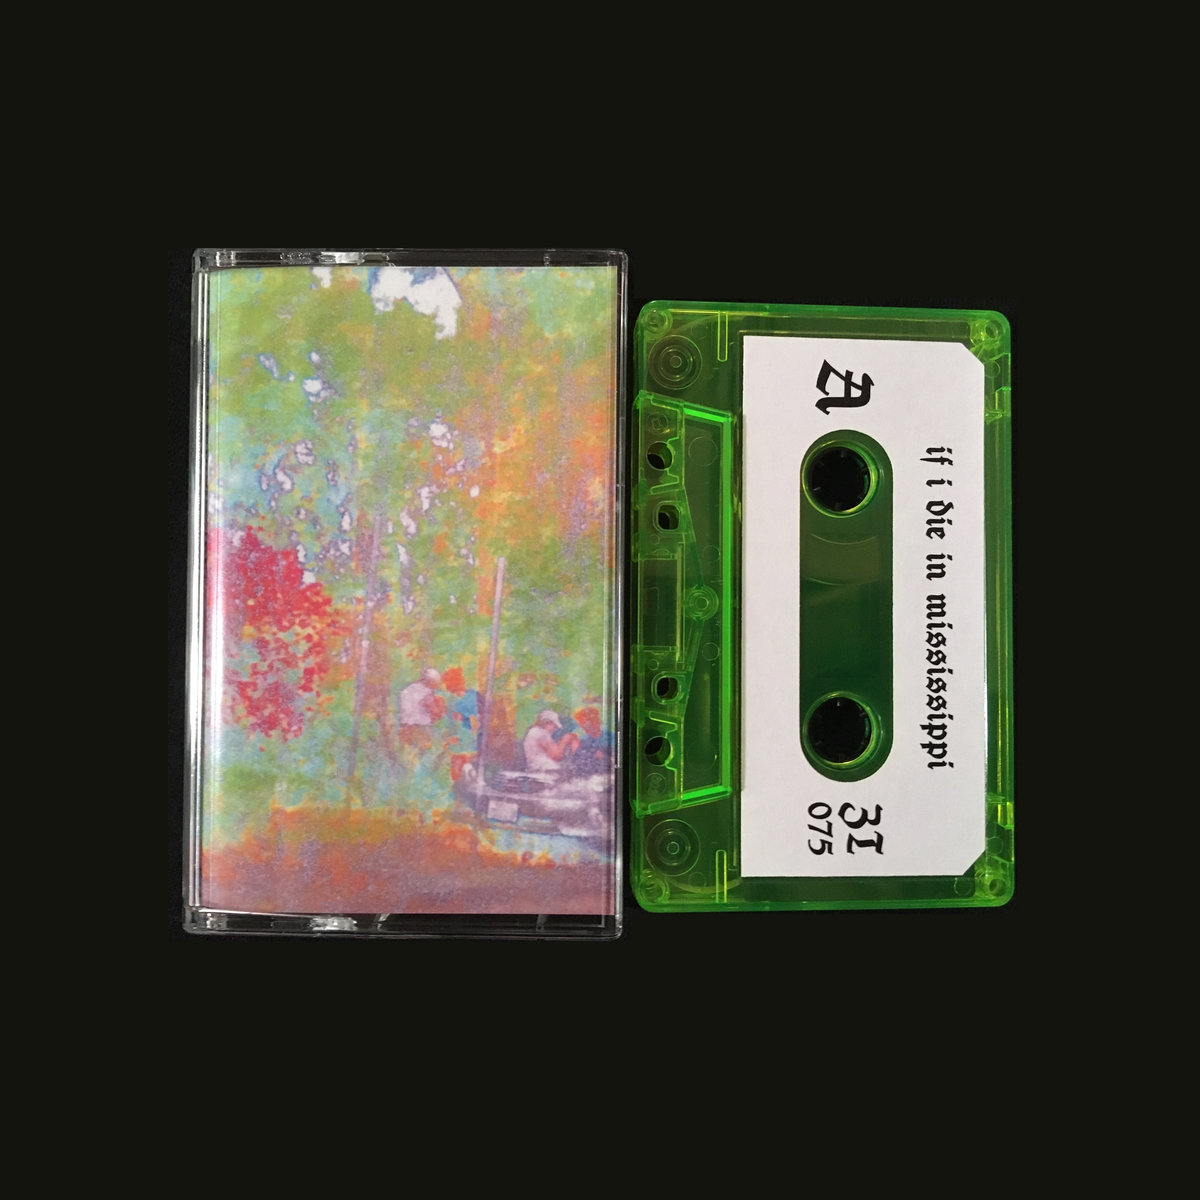 [SOLD] if i die in mississippi - holographic heartache (Z Tapes)